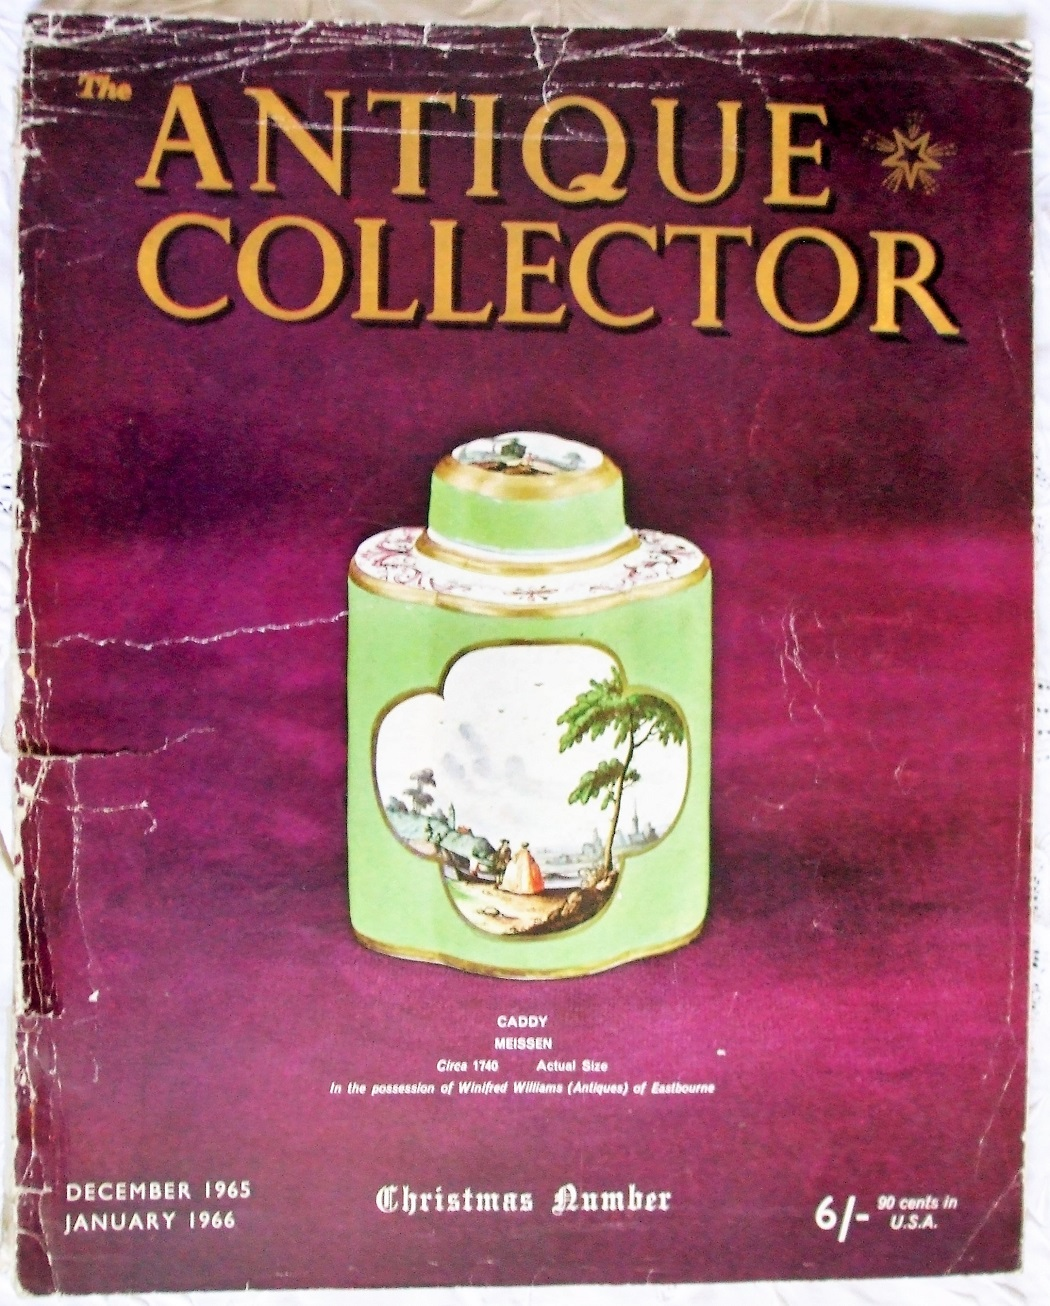 Antique Collector December 1965-January 1966